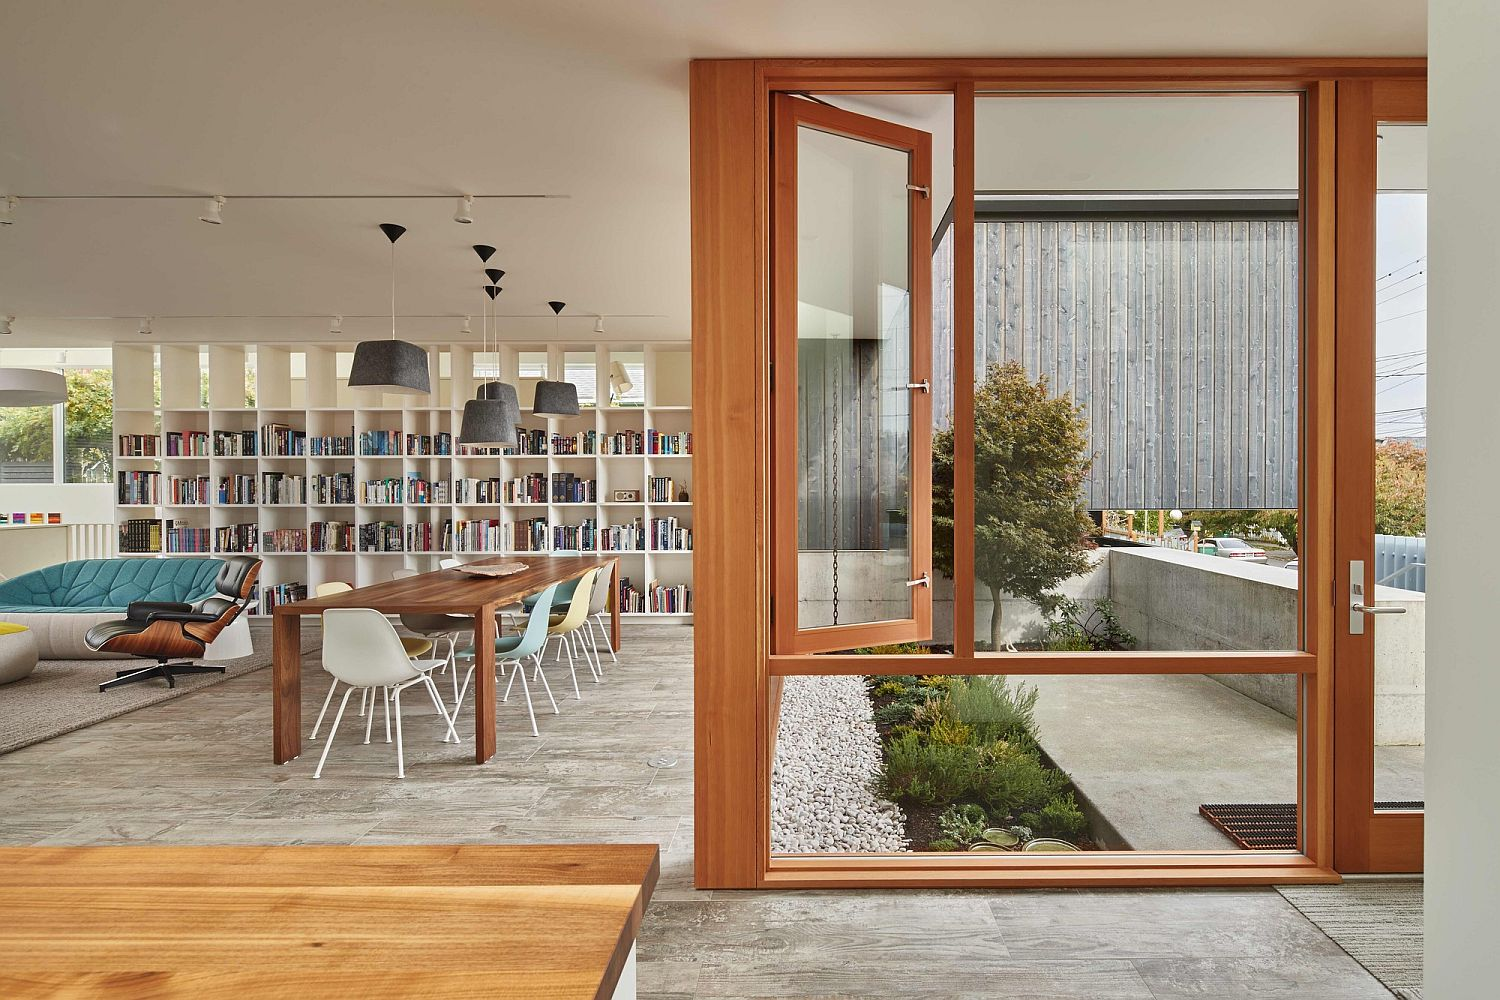 Contemporary living area of the Seattle home connected to the courtyard Comfort, Ingenuity and Connectivity with the Outdoors: Artist Residence in Seattle